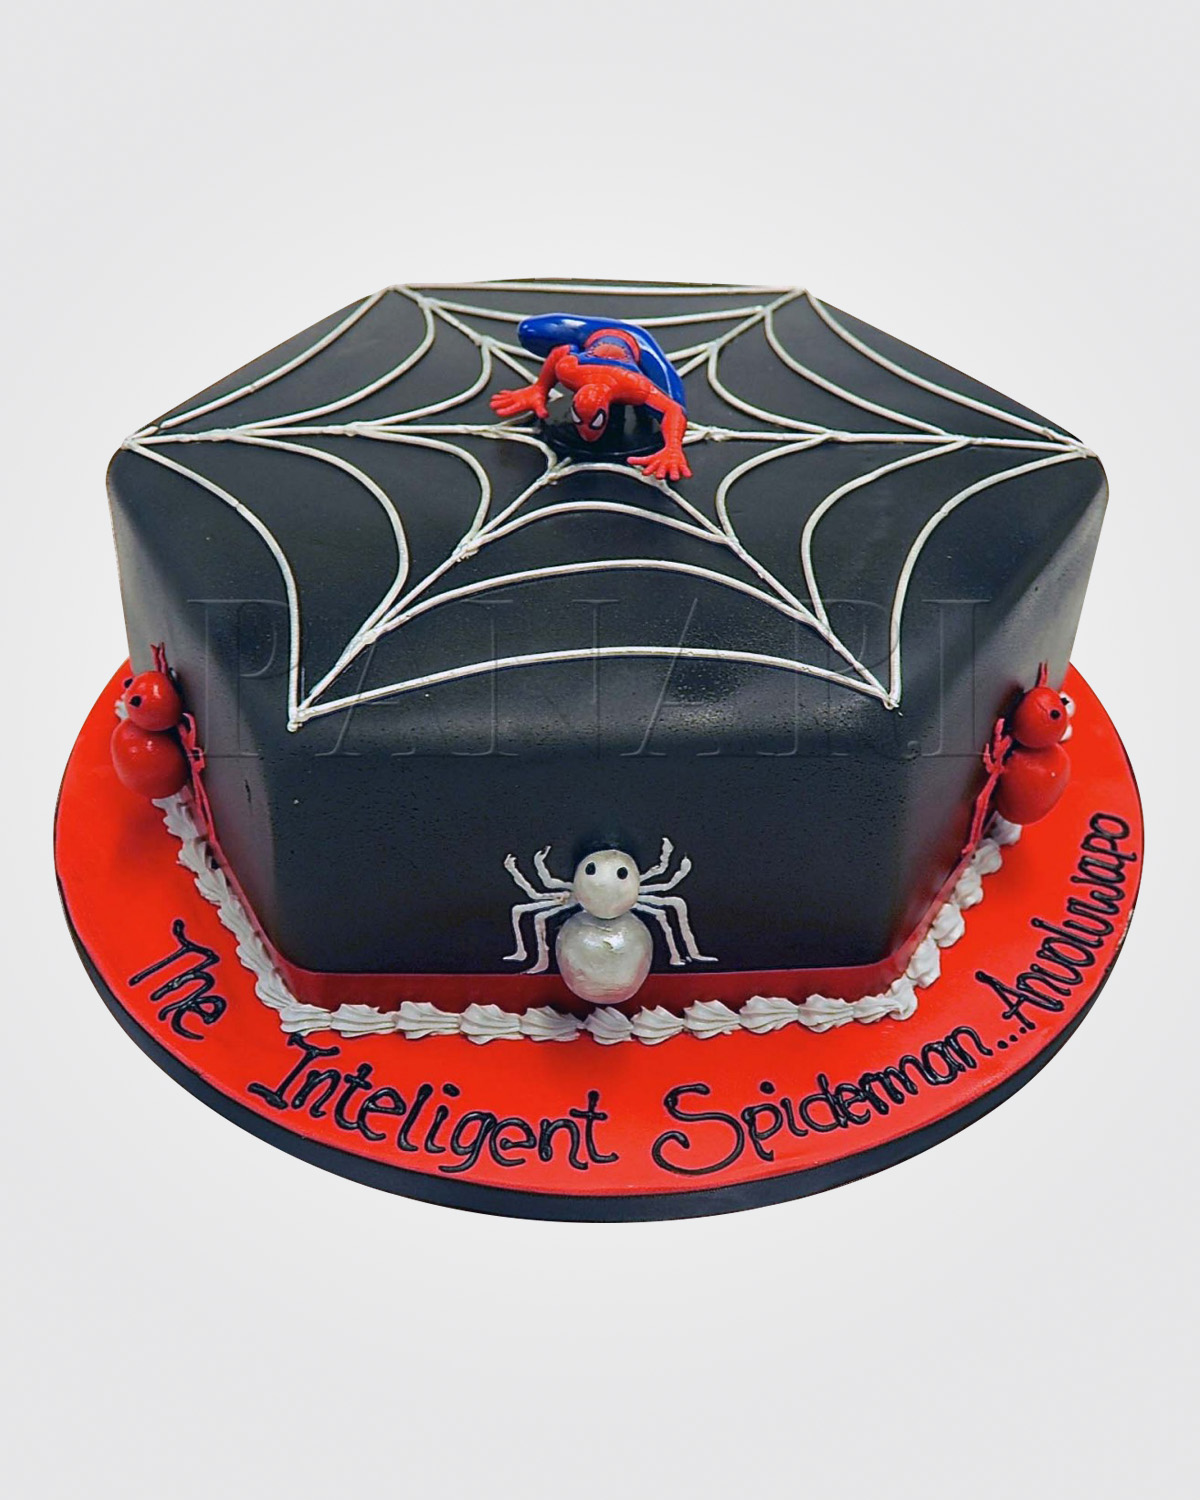 Spiderman Cake SP0549